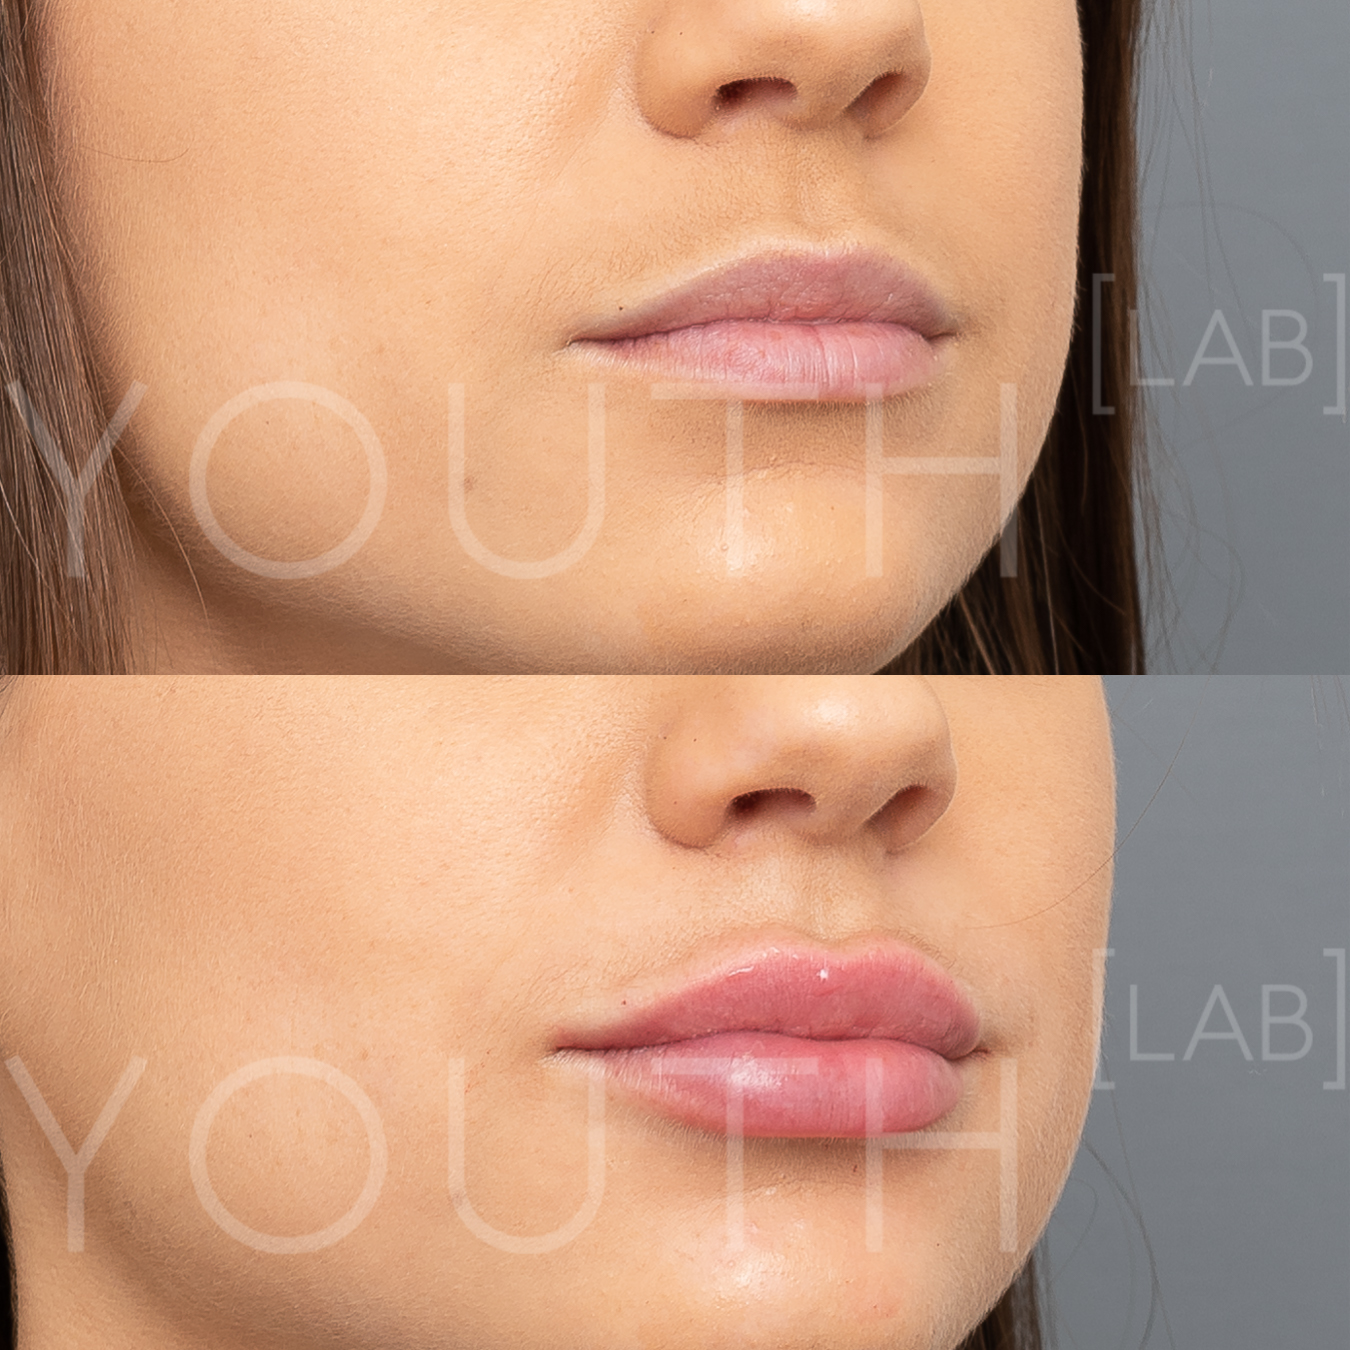 Subtle, Natural Lip Enhancement (Lip Fillers) — Youth Lab, Perth